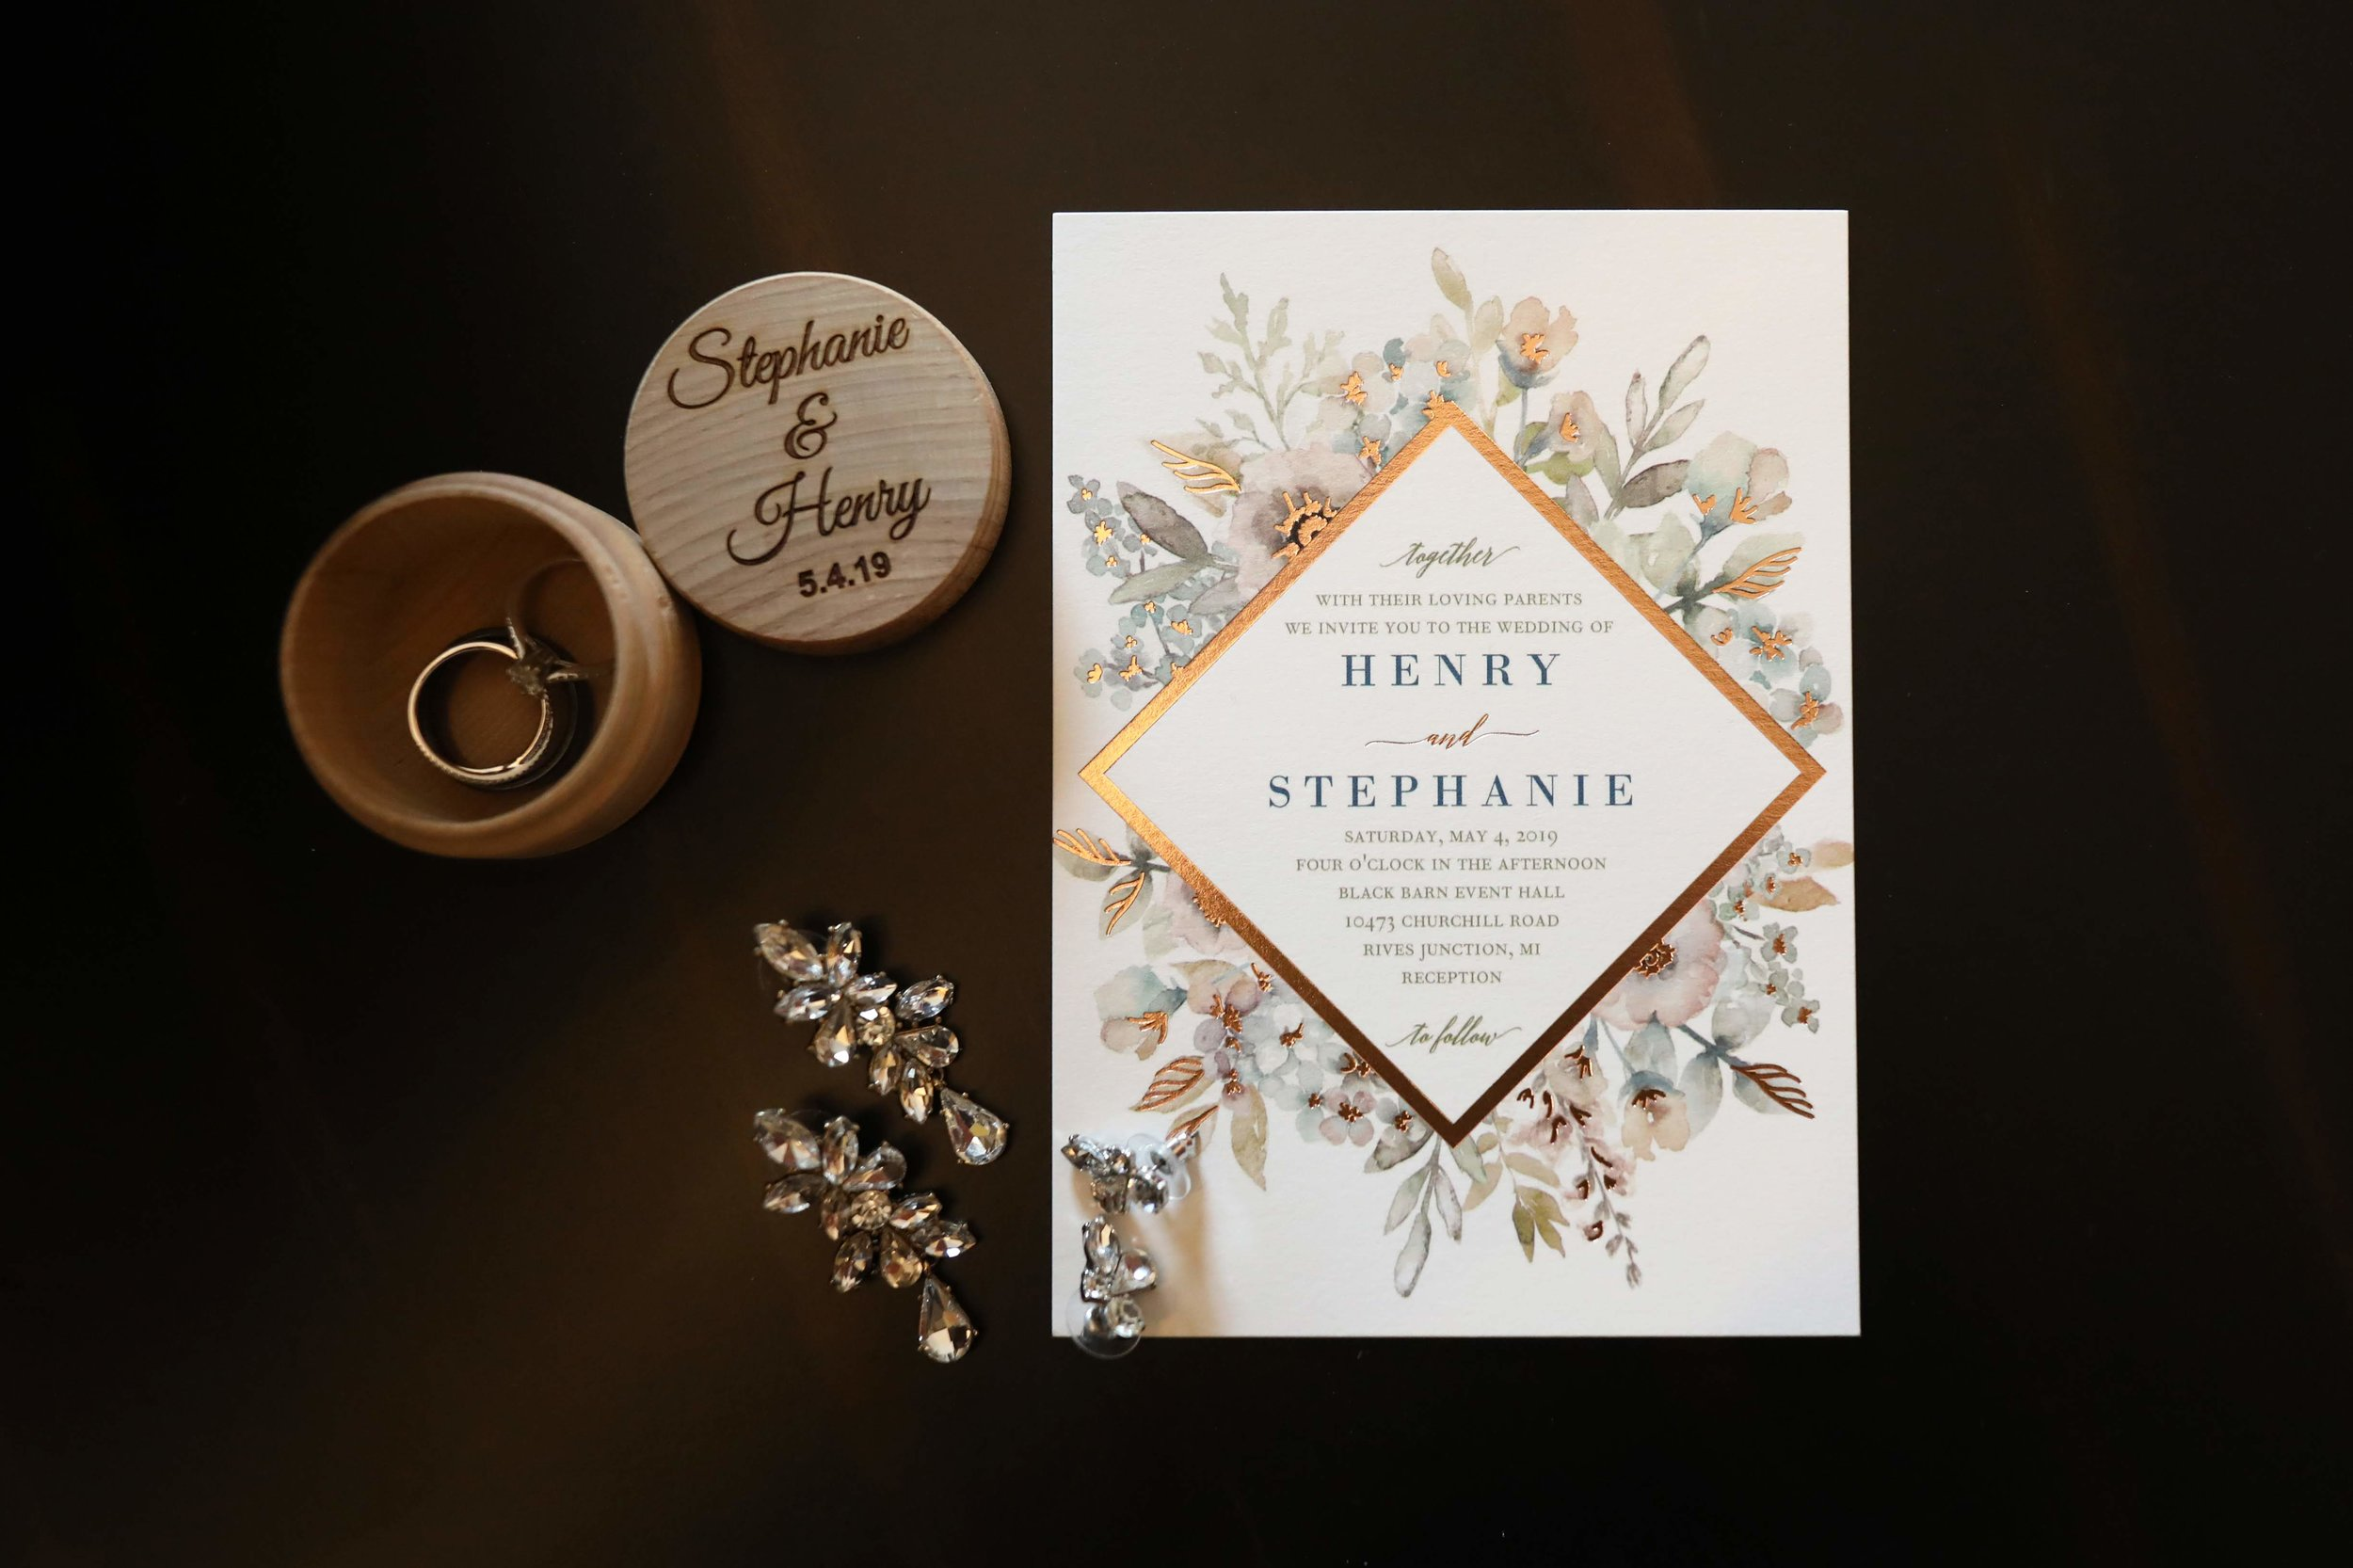 Such a beautiful invitation for their spring wedding look.